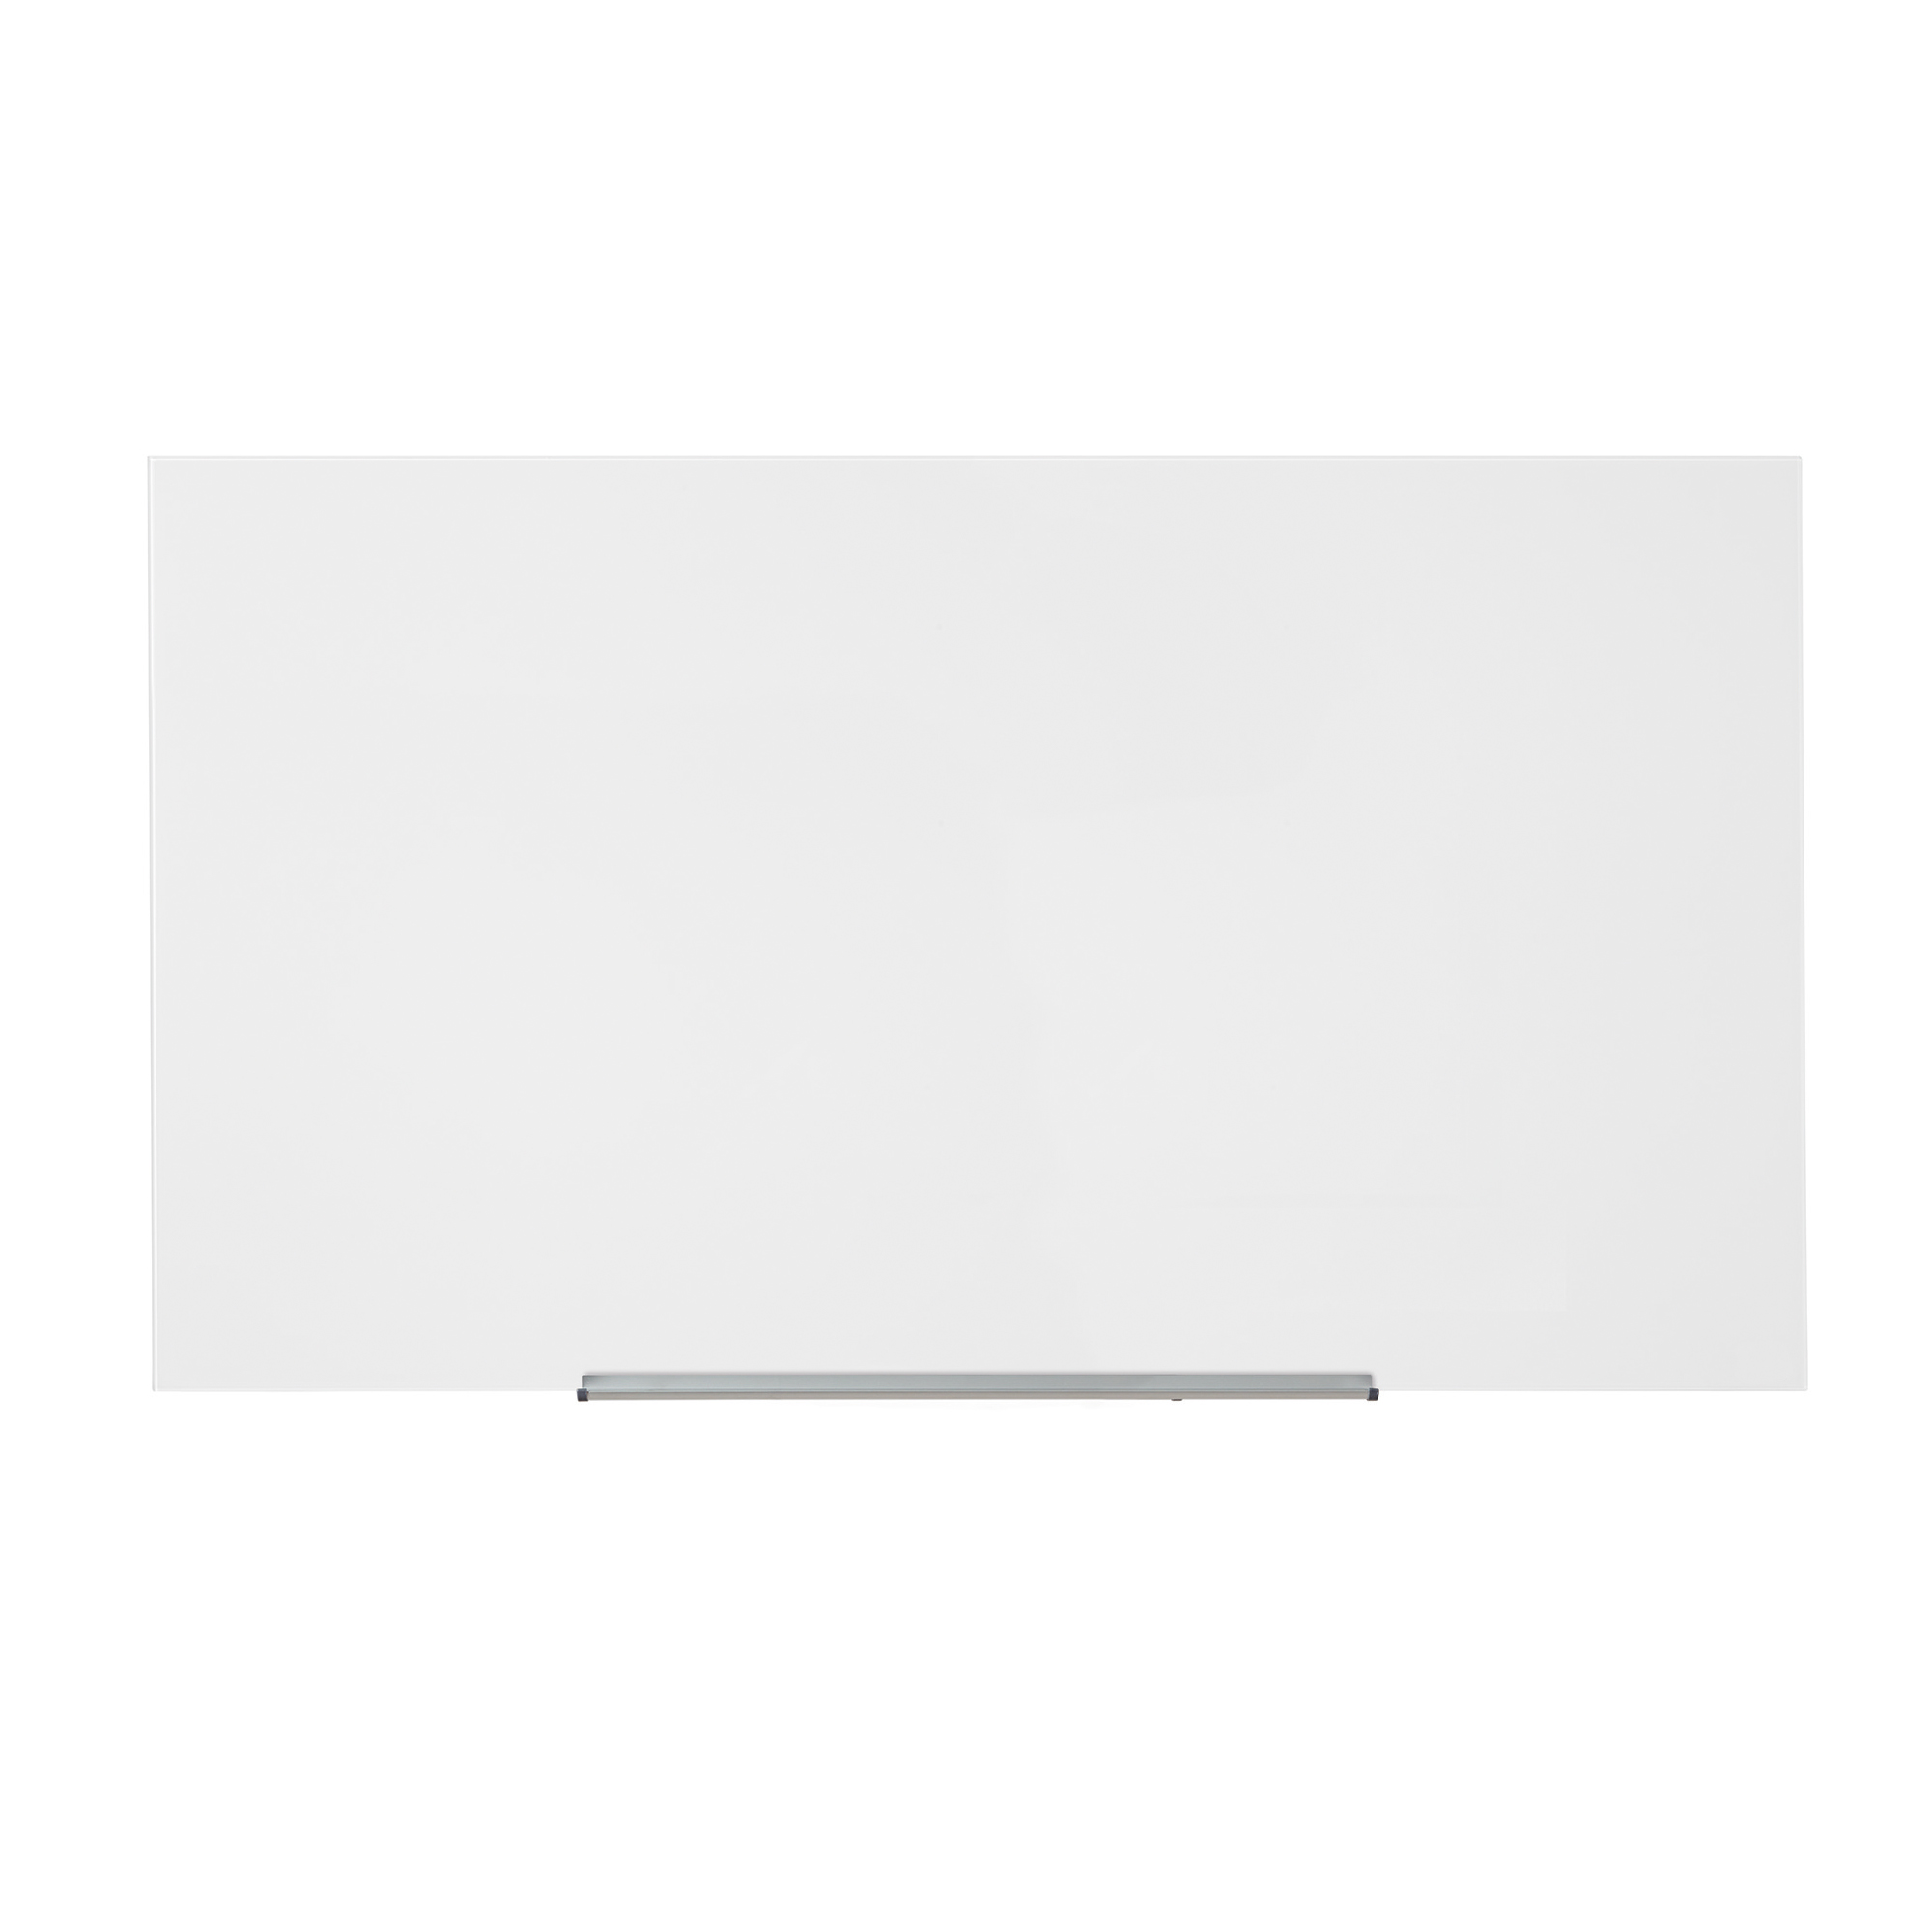 Magnetic 5 Star Office Glass Board Magnetic with Wall Fixings W1264xH711mm White